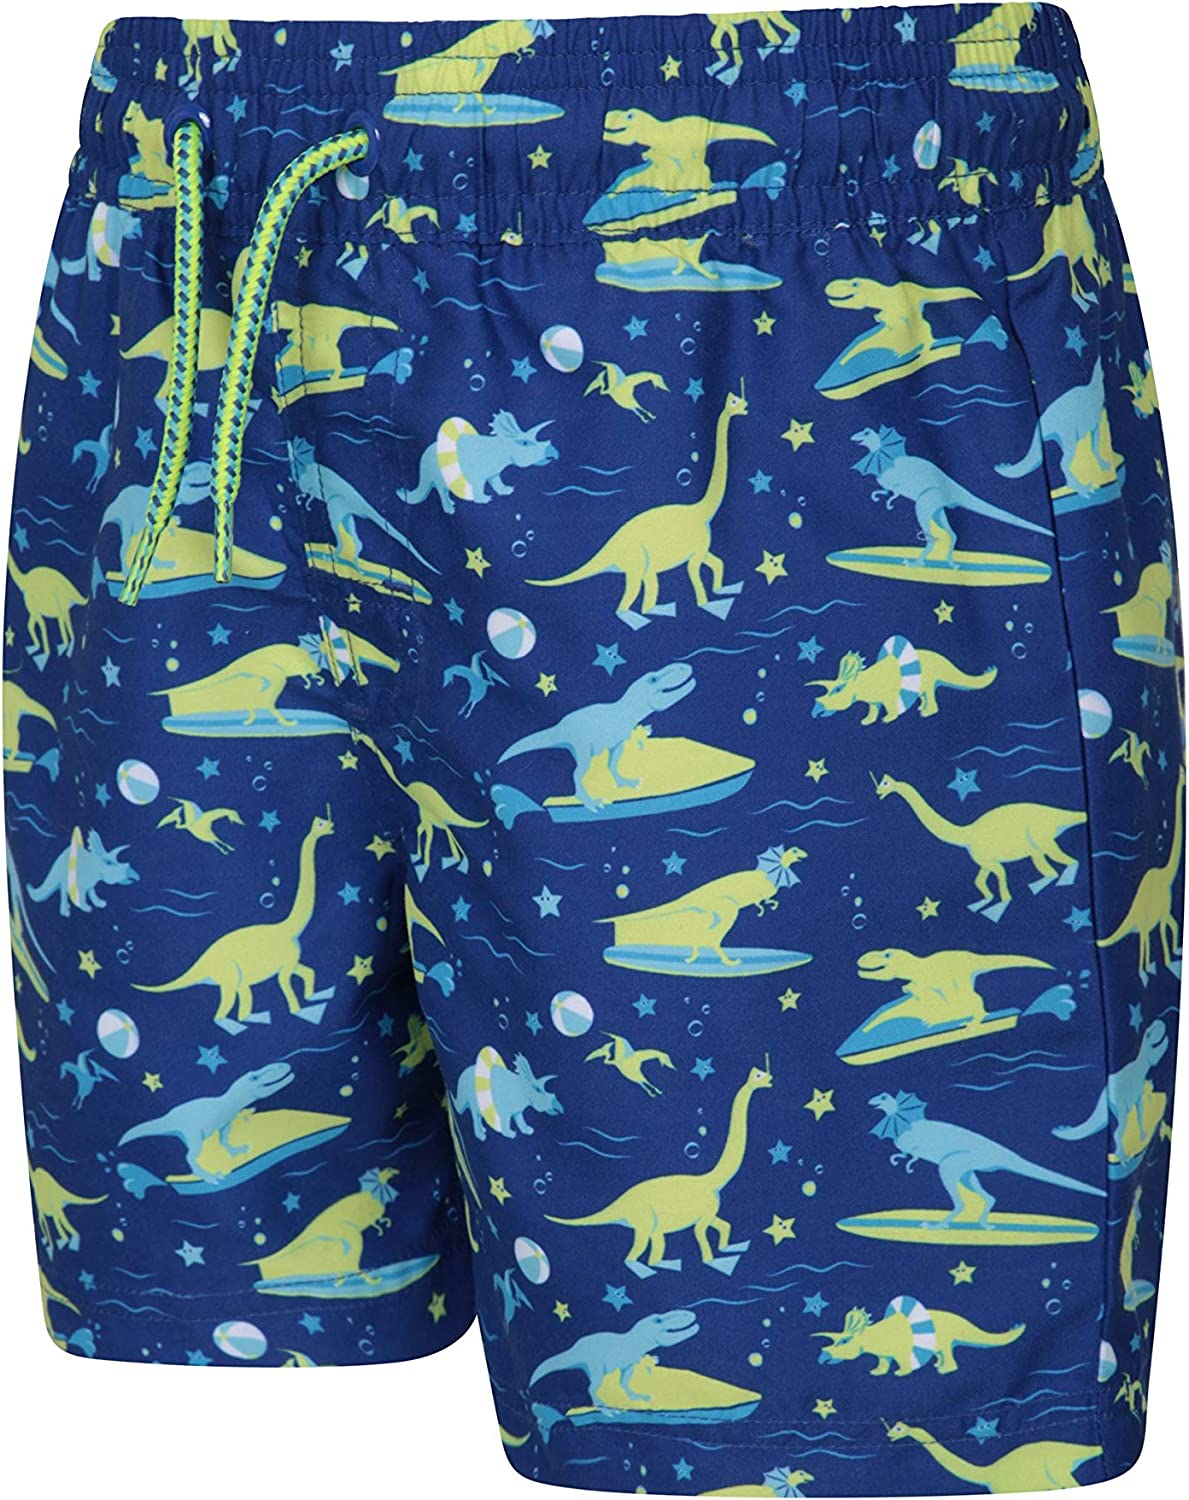 Surfing /& Pool Lightweight Beach Shorts Easy Care Kids Swim Shorts Mountain Warehouse Patterned Kids Boardshorts 2 Cargo Pockets with Adjustable Waist -for Swimming